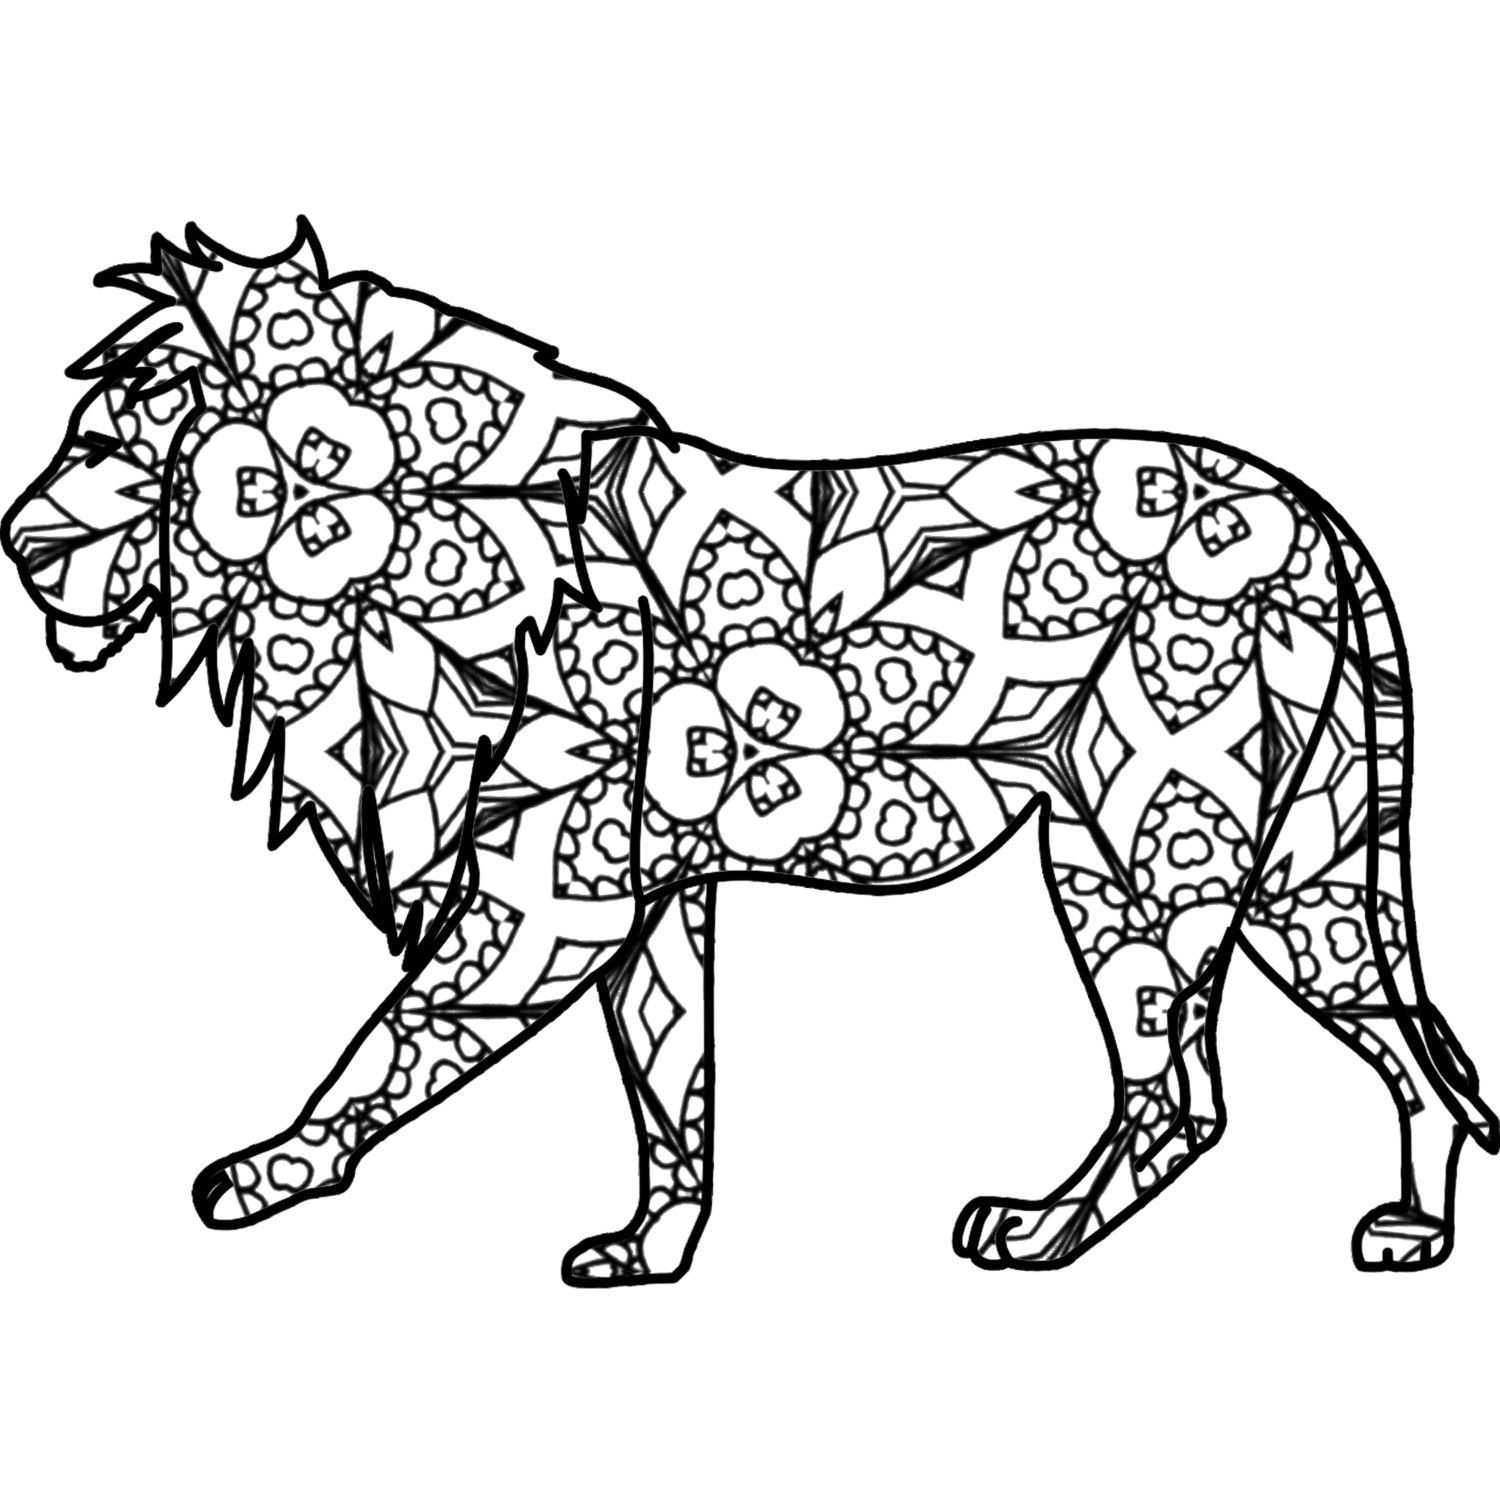 This item is unavailable Adult coloring pages, Coloring